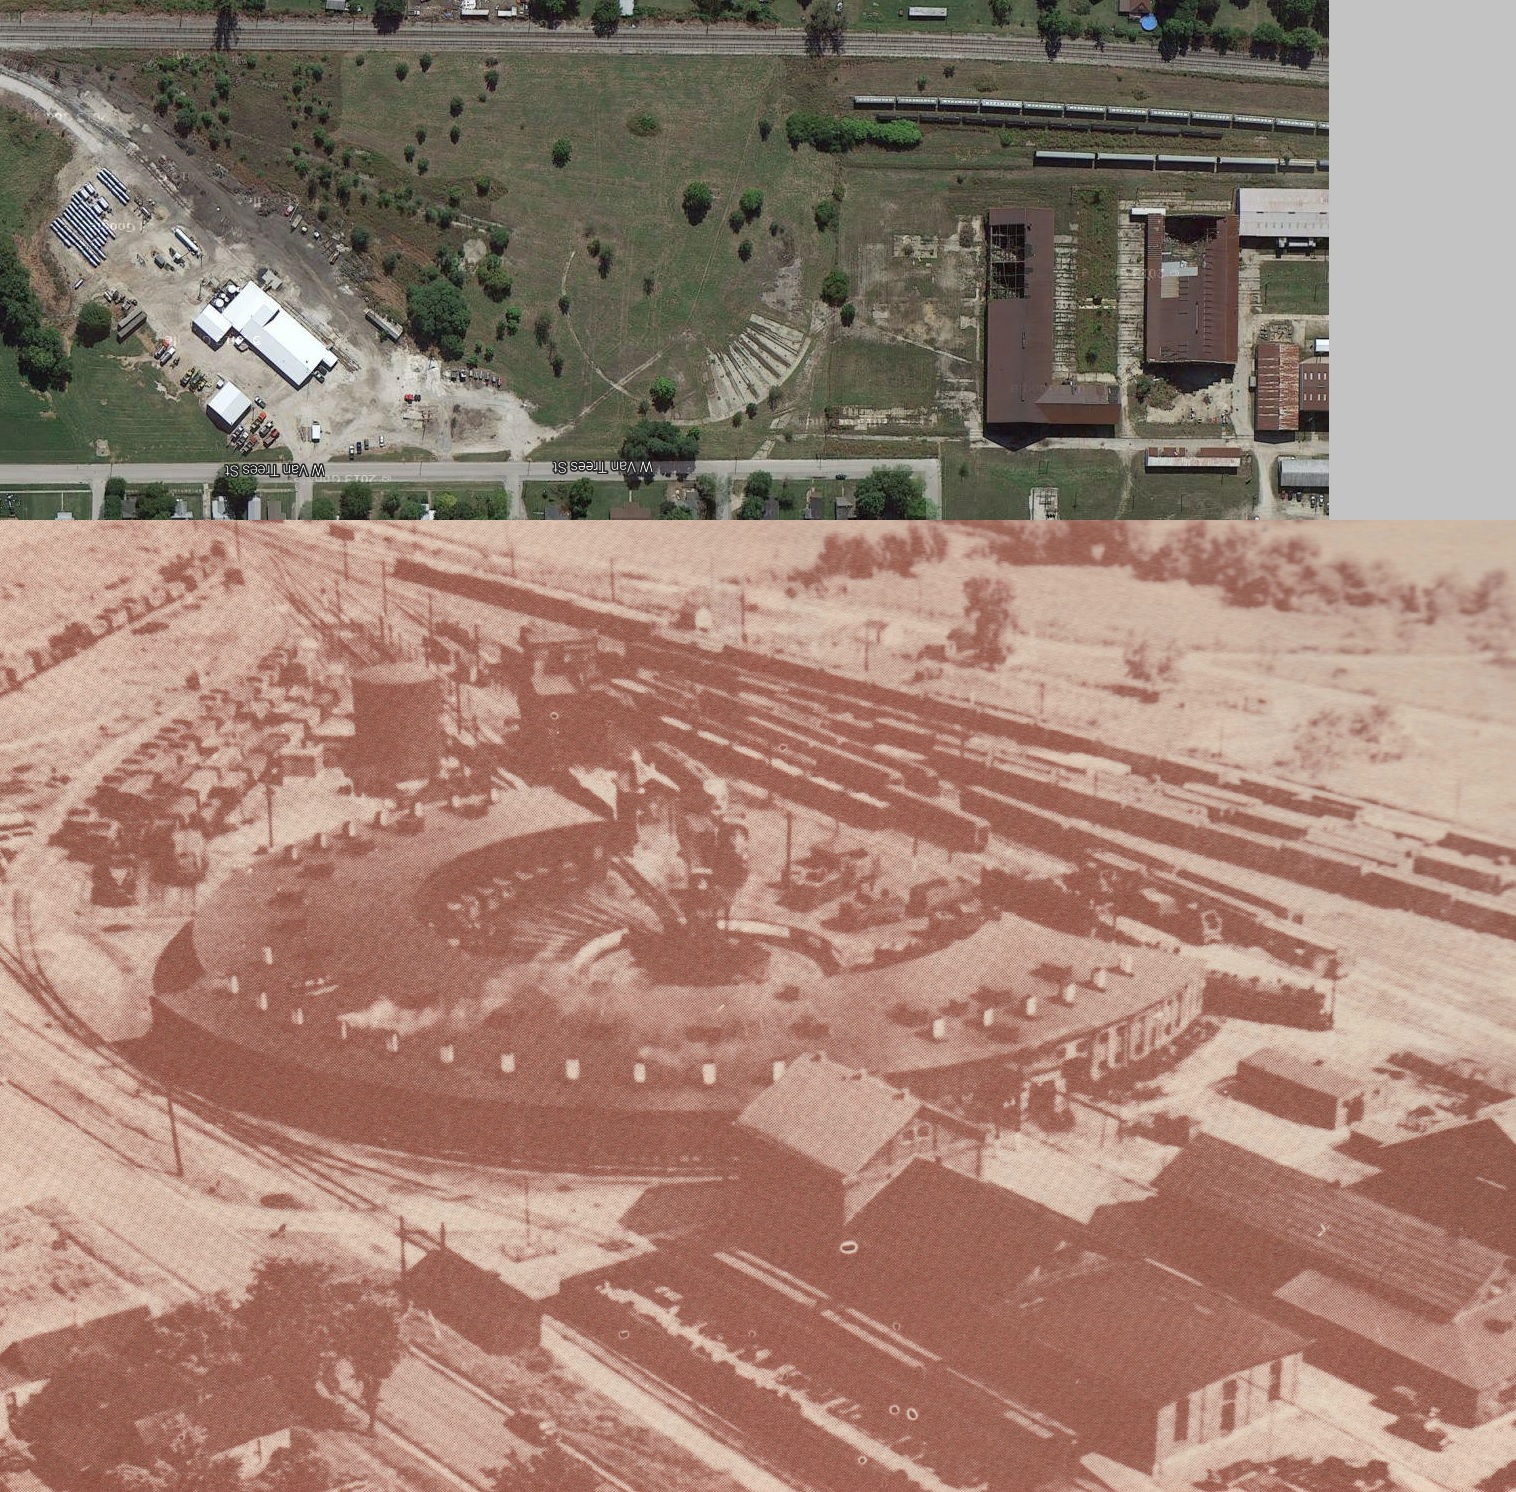 Indiana knox county ragsdale - Washington Indiana Roundhouse Then And Now